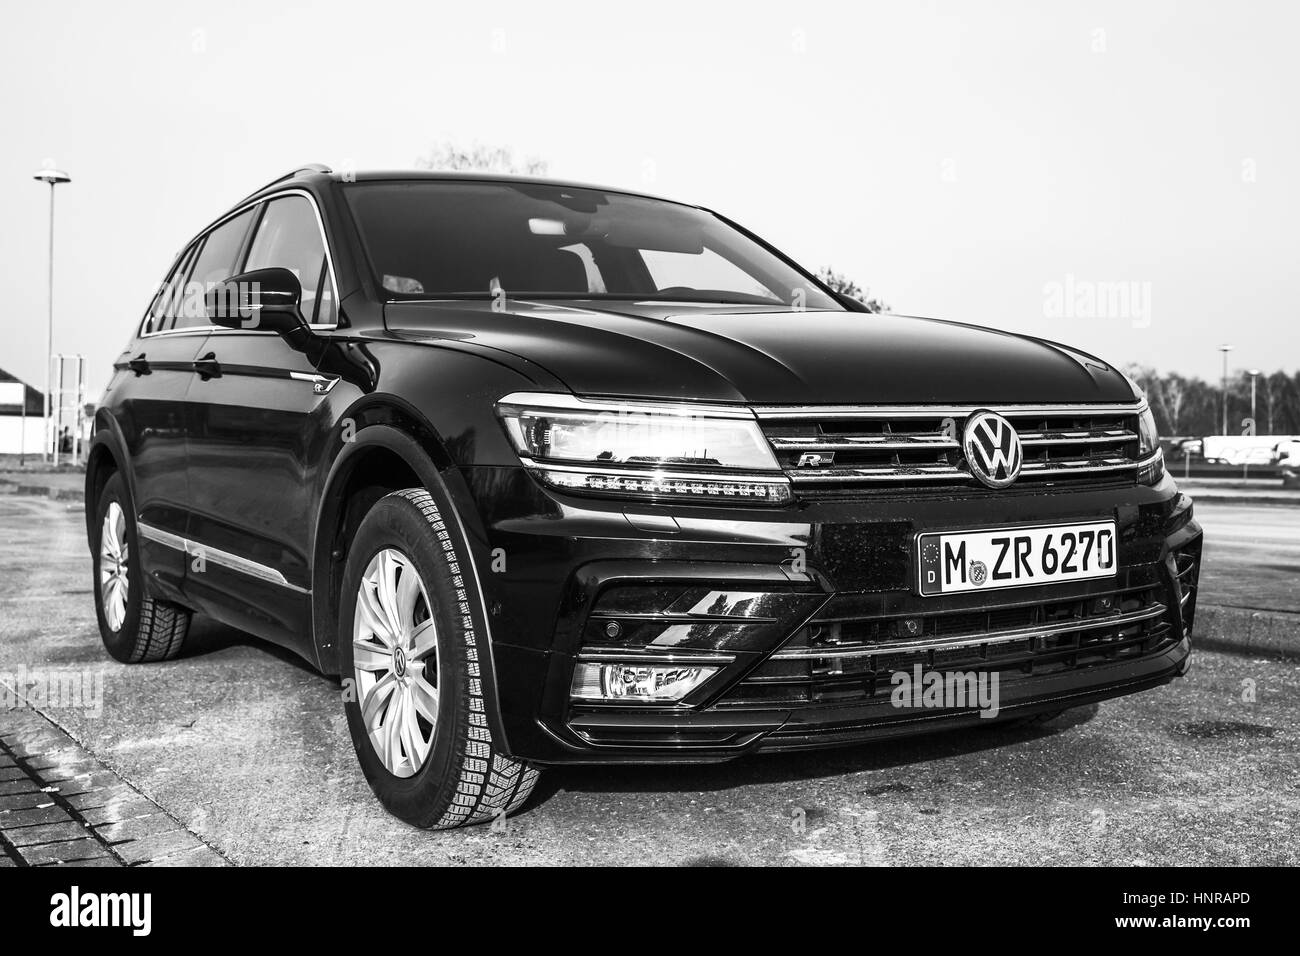 Hamburg, Germany - February 10, 2017: Outdoor photo of second generation Volkswagen Tiguan, R-Line. Compact crossover - Stock Image